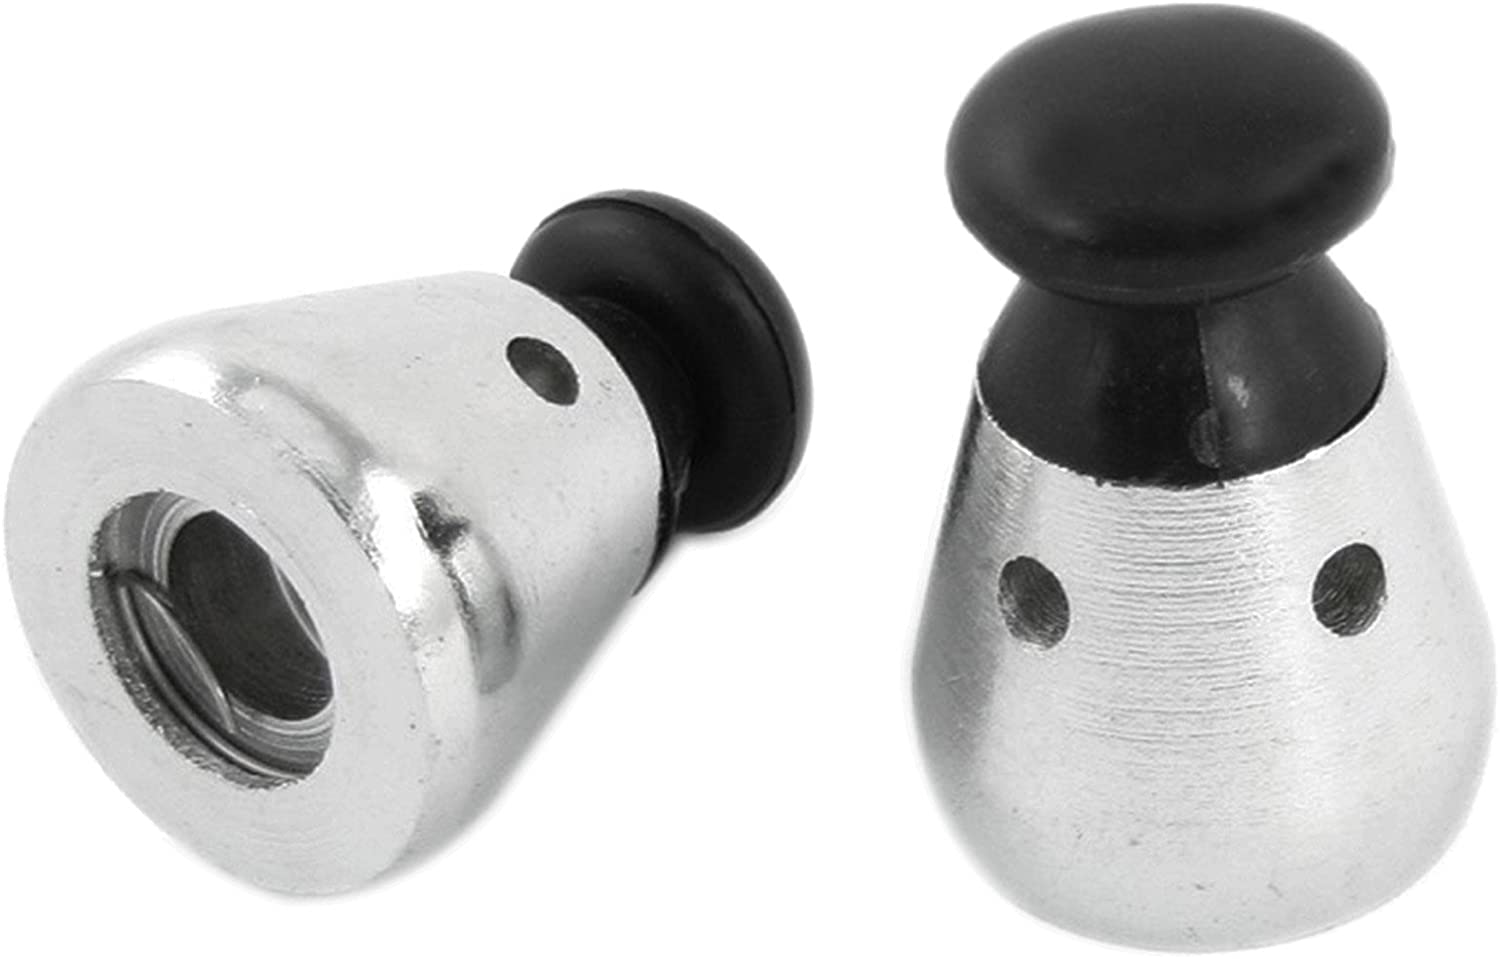 Ogrmar Pressure Cooker Jigger Valve Pack of 2 Black (2 pcs)